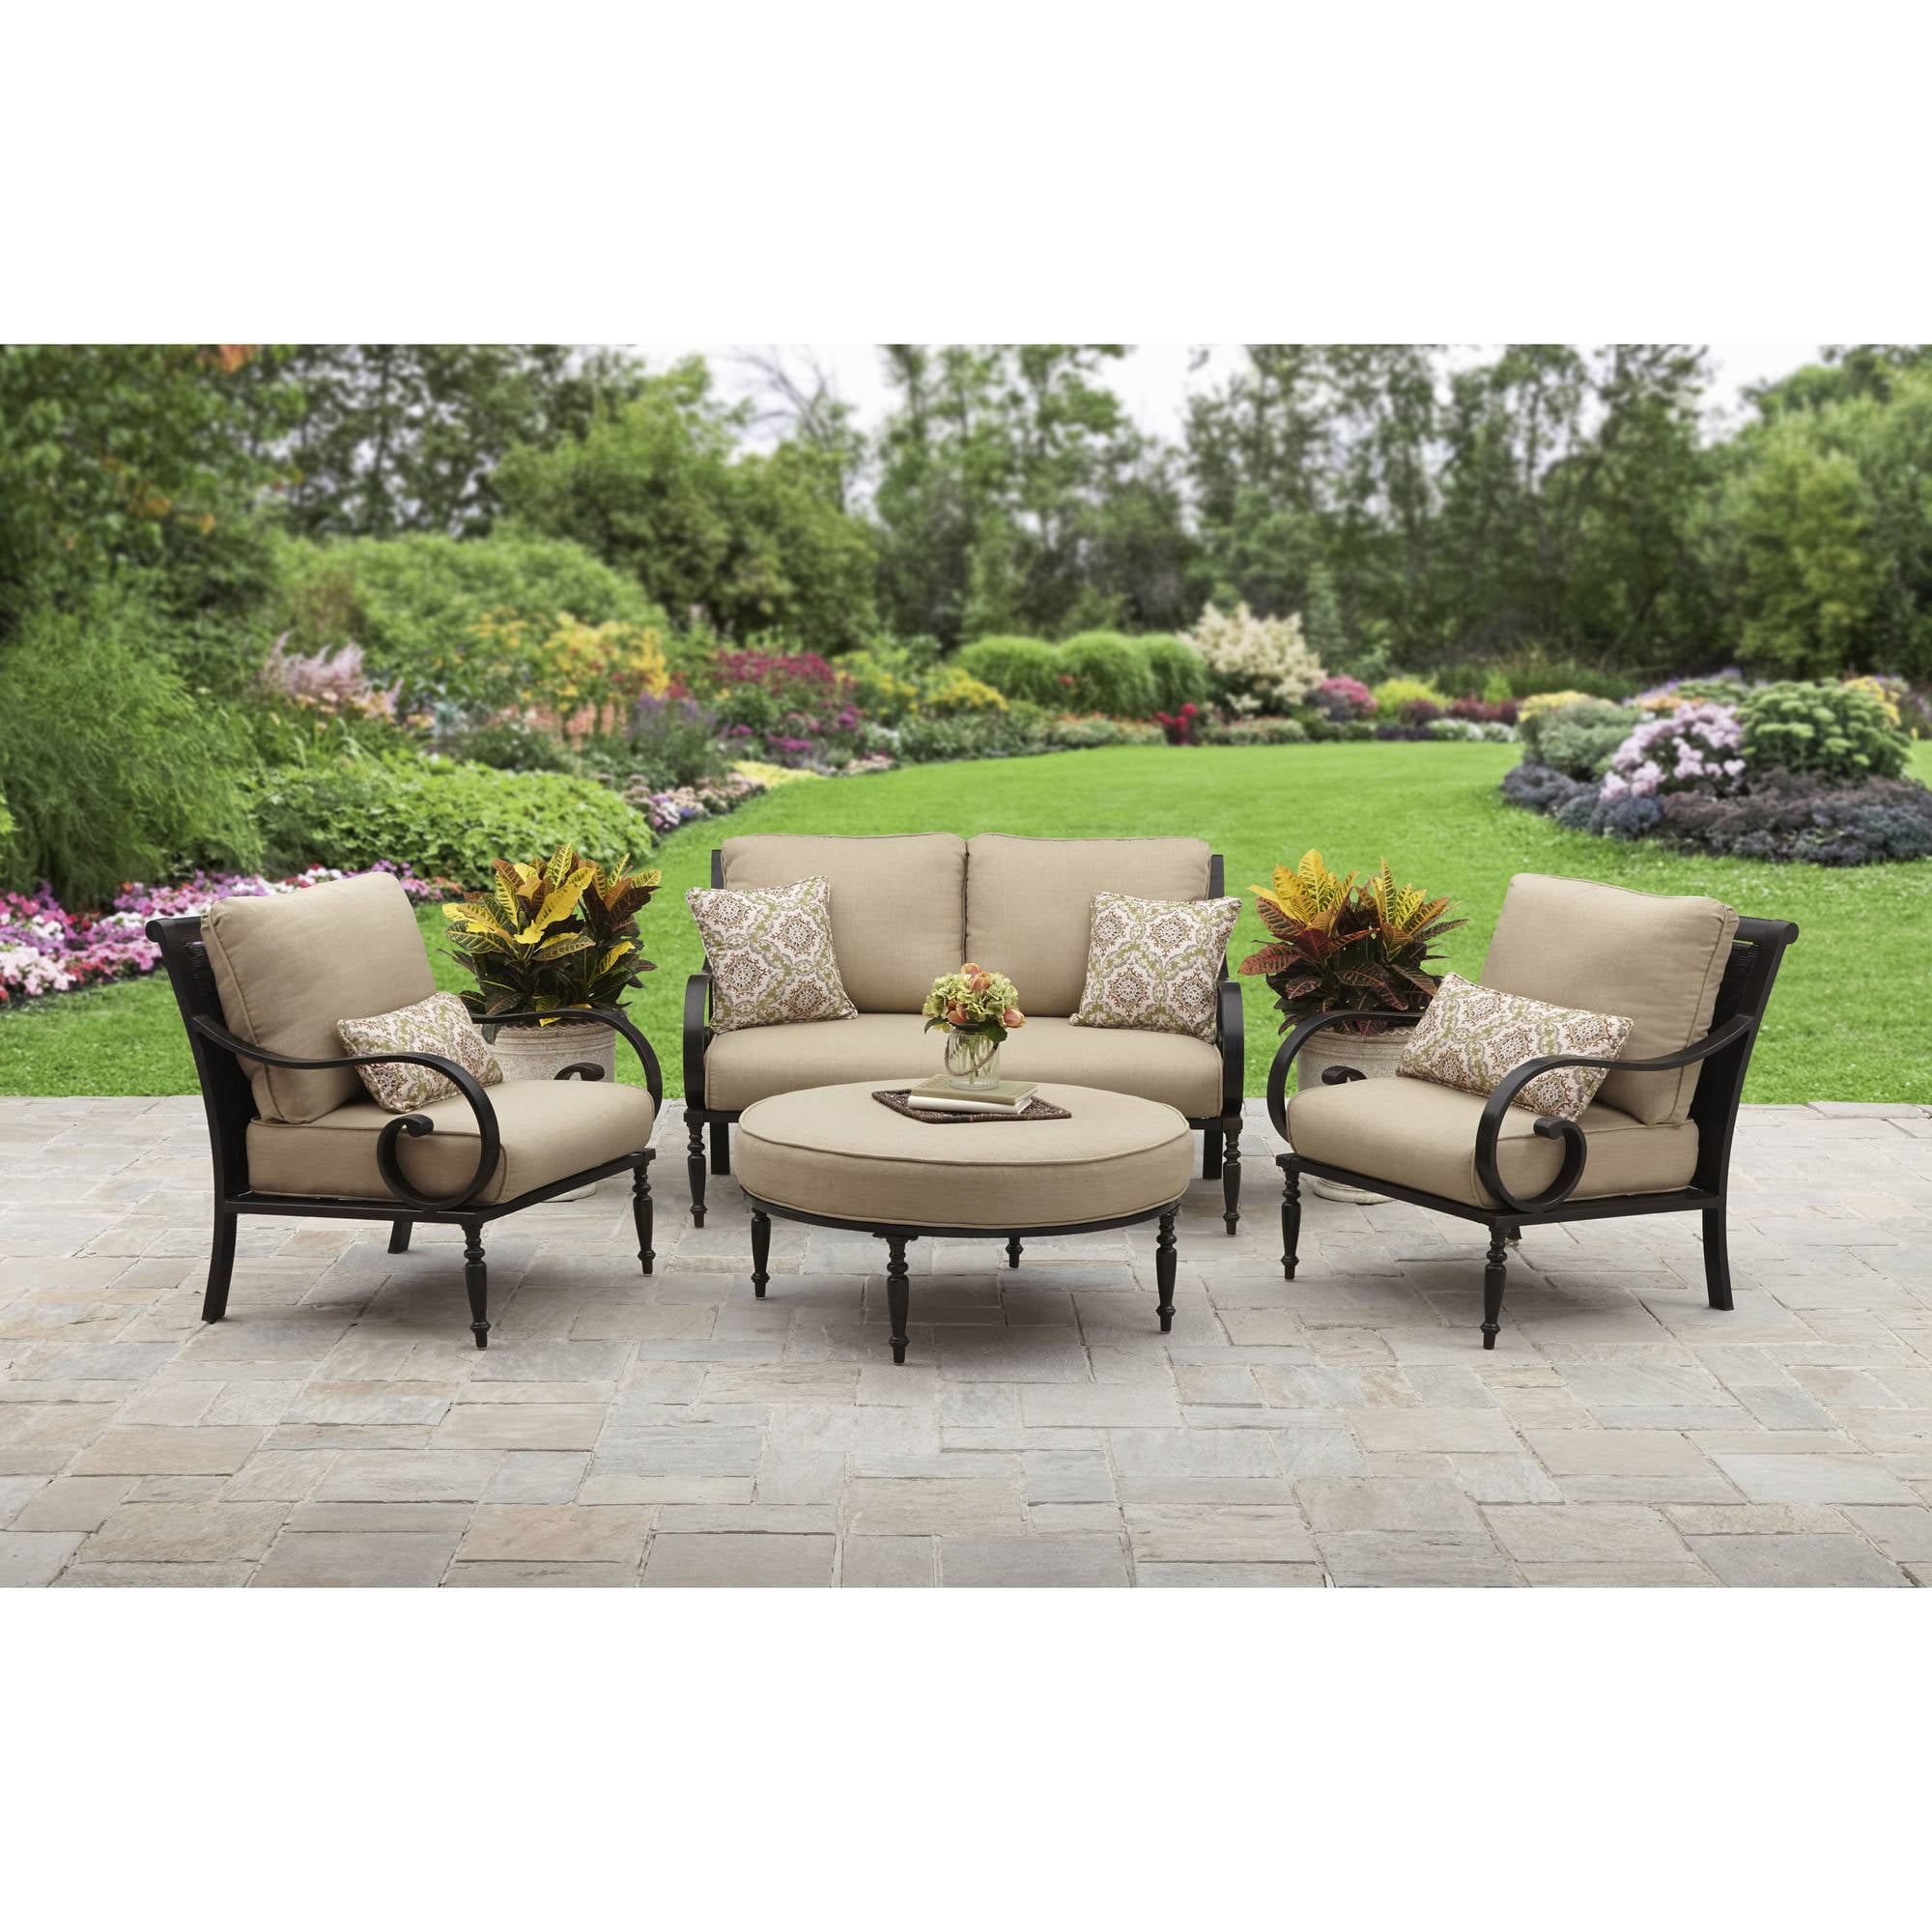 Better Homes And Gardens Englewood Heights Ii Aluminum 4 Piece Outdoor Patio Conversation Set Seats